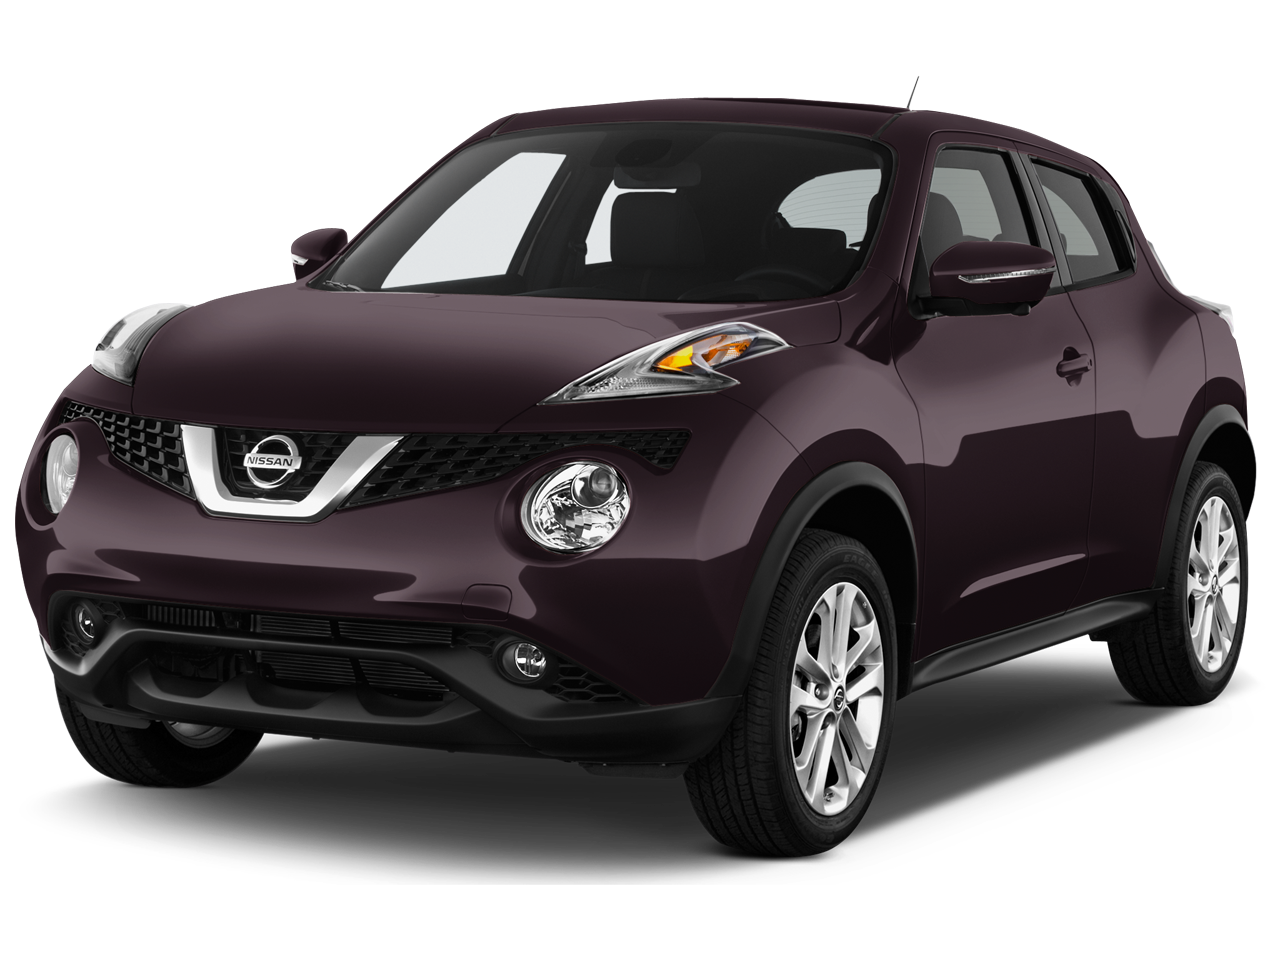 New 2017 Nissan Juke S - Near Elk Grove CA - Nissan of Elk ...